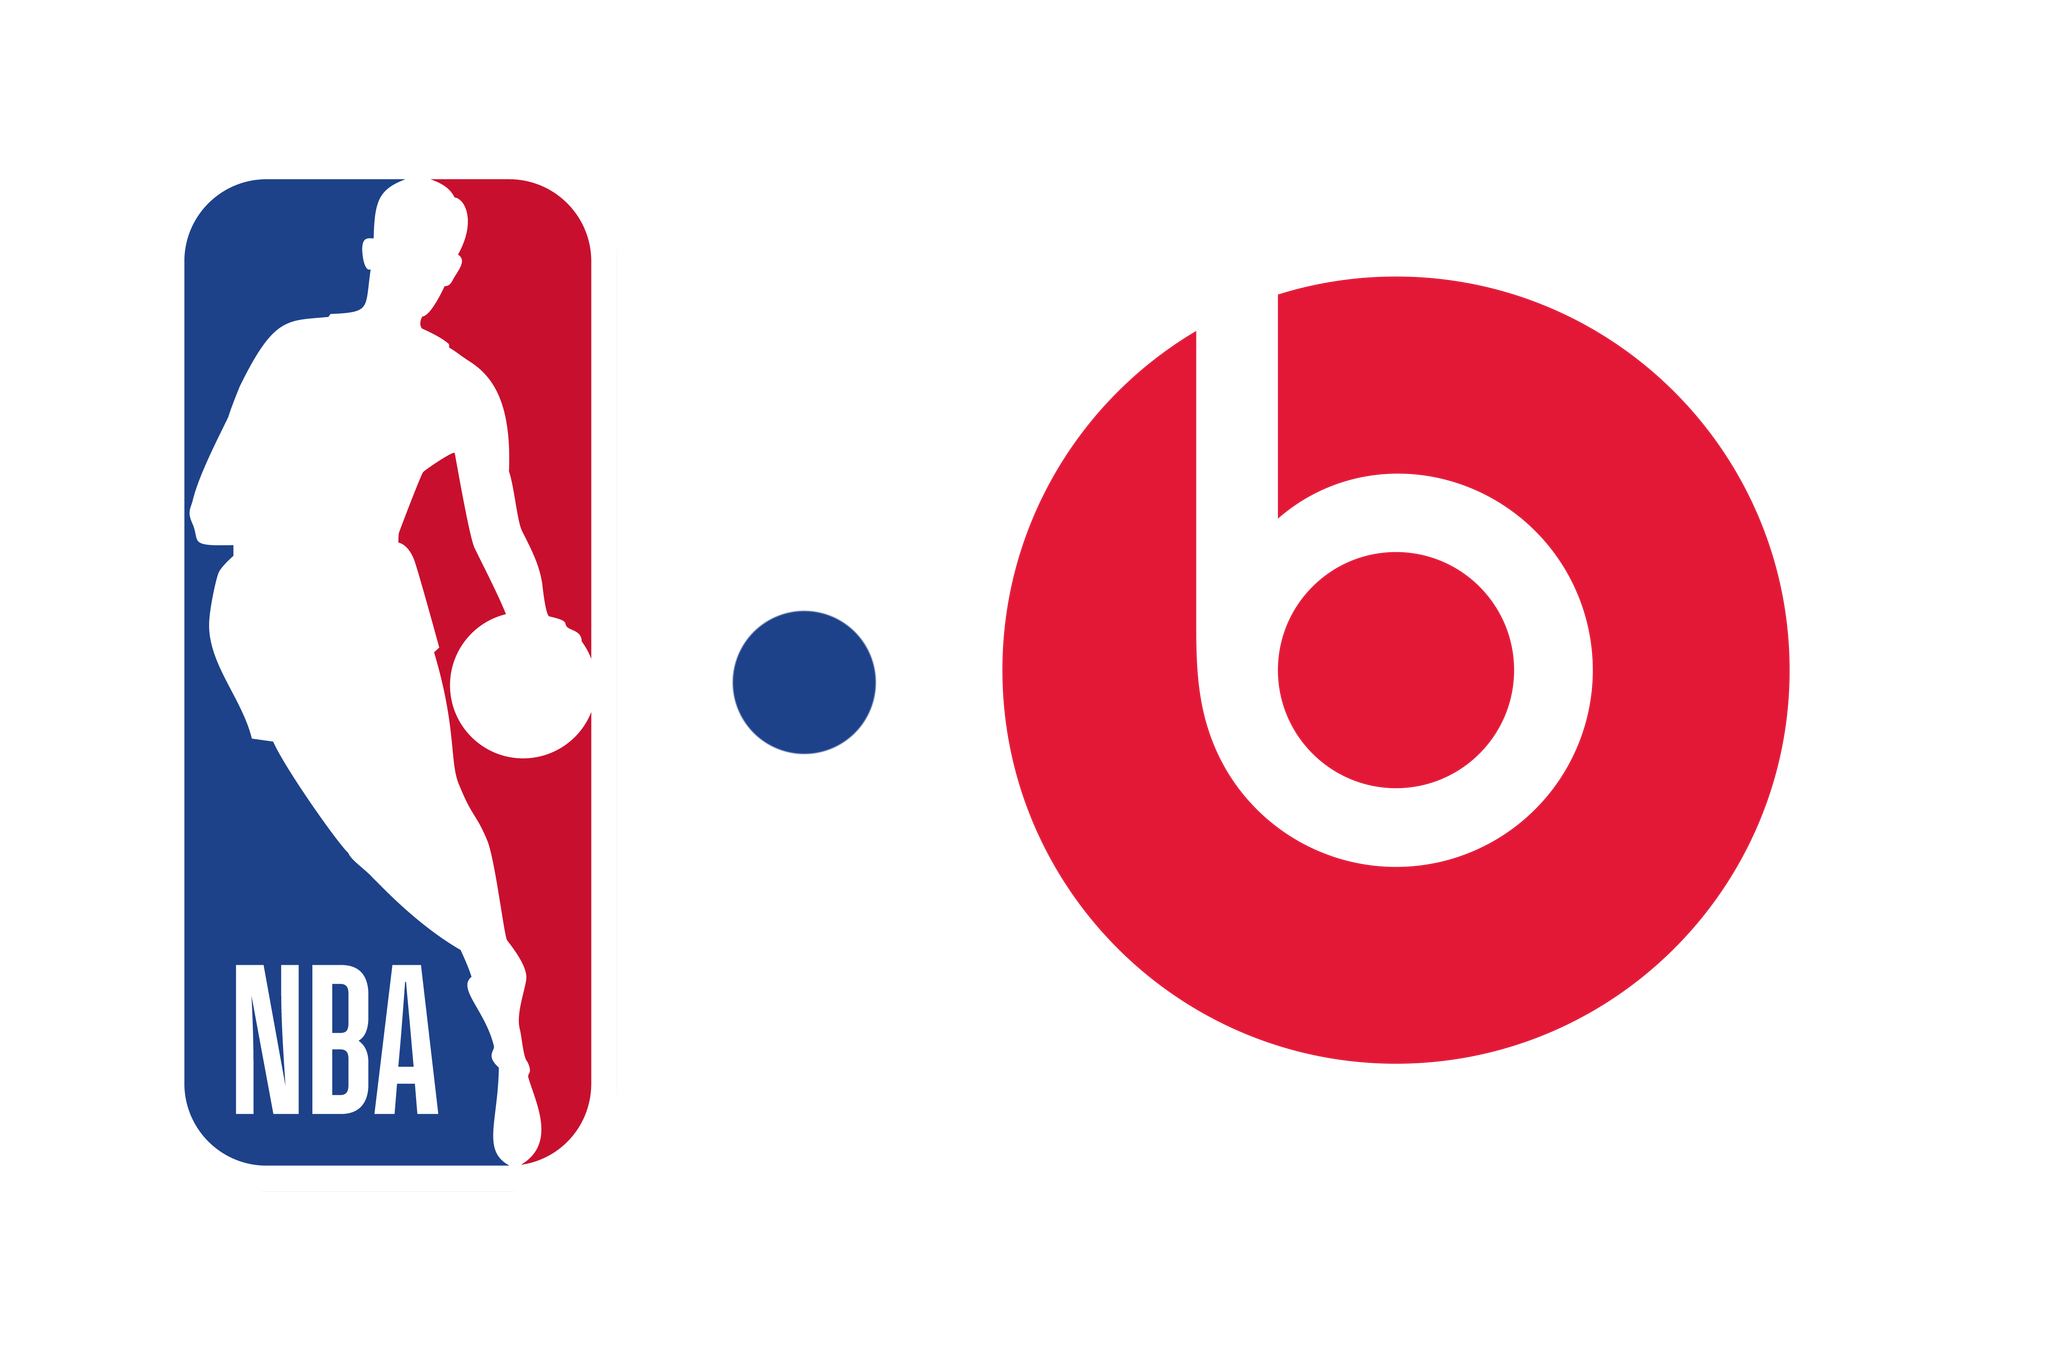 Beats By Dre & NBA Announce Global Partnership